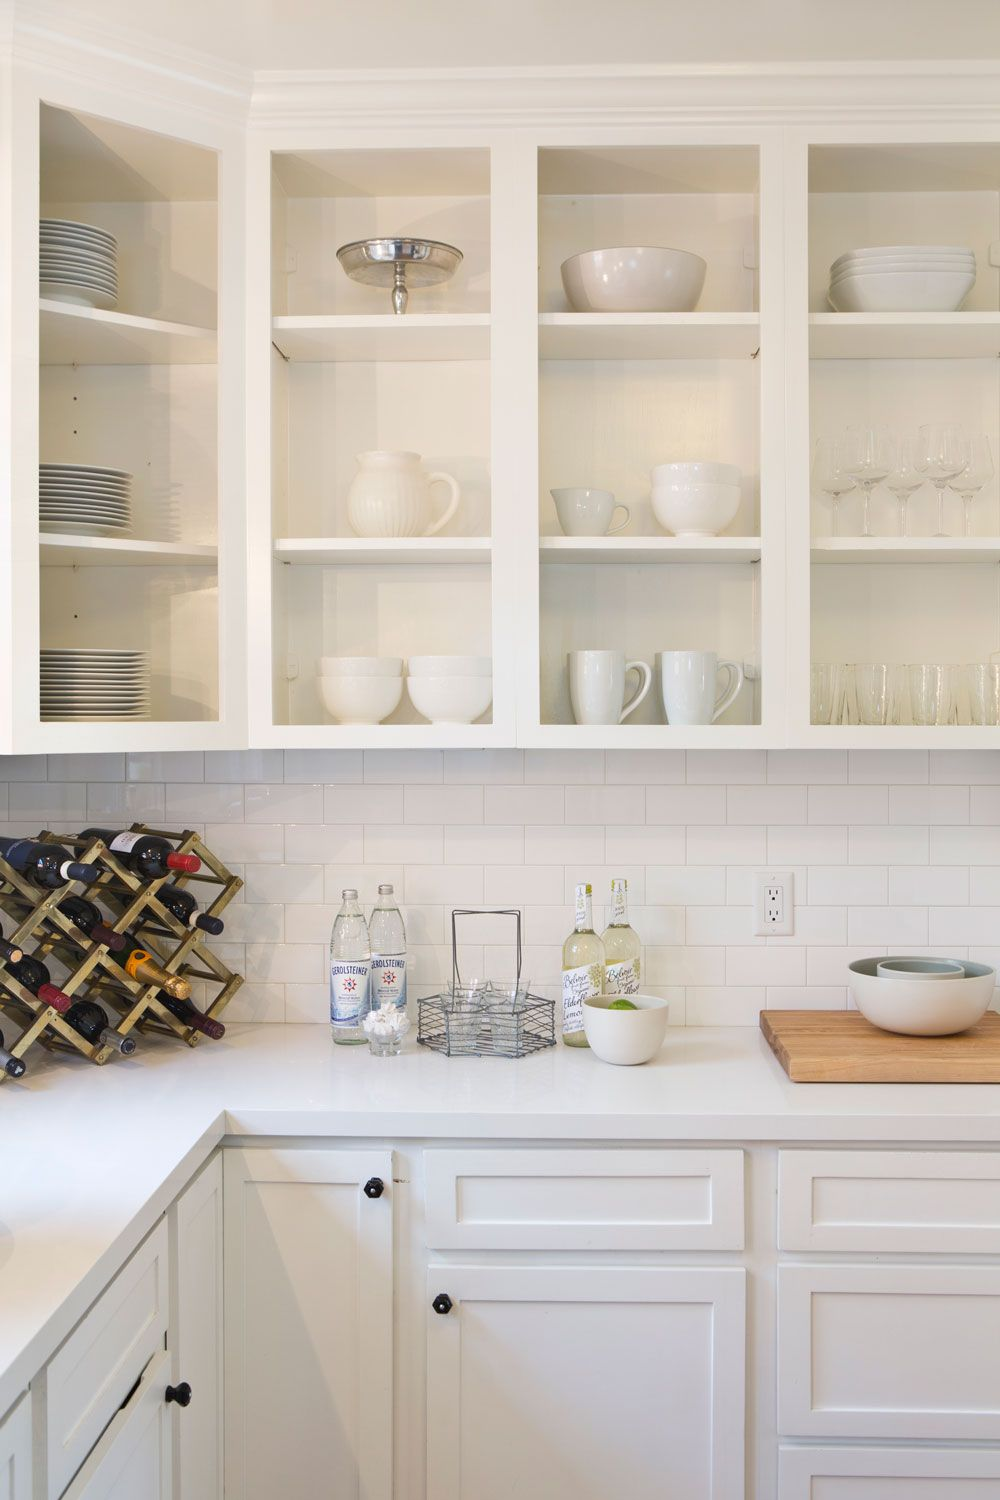 Gallery Shira Gill Home Open Kitchen Cabinets Upper Kitchen Cabinets New Kitchen Cabinets